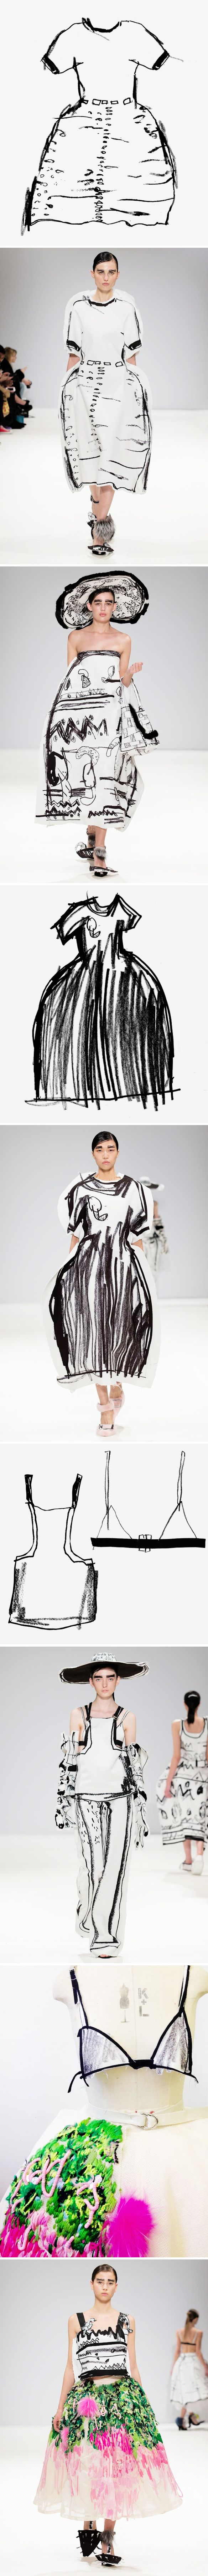 Fall/Winter collection of UK based designer Edda Gimnes.   Quick marker drawings that popped magically out of her sketchbook and onto the runways of London in the form of shoes, dresses, bras… so creative, so hilarious, so fantastic!